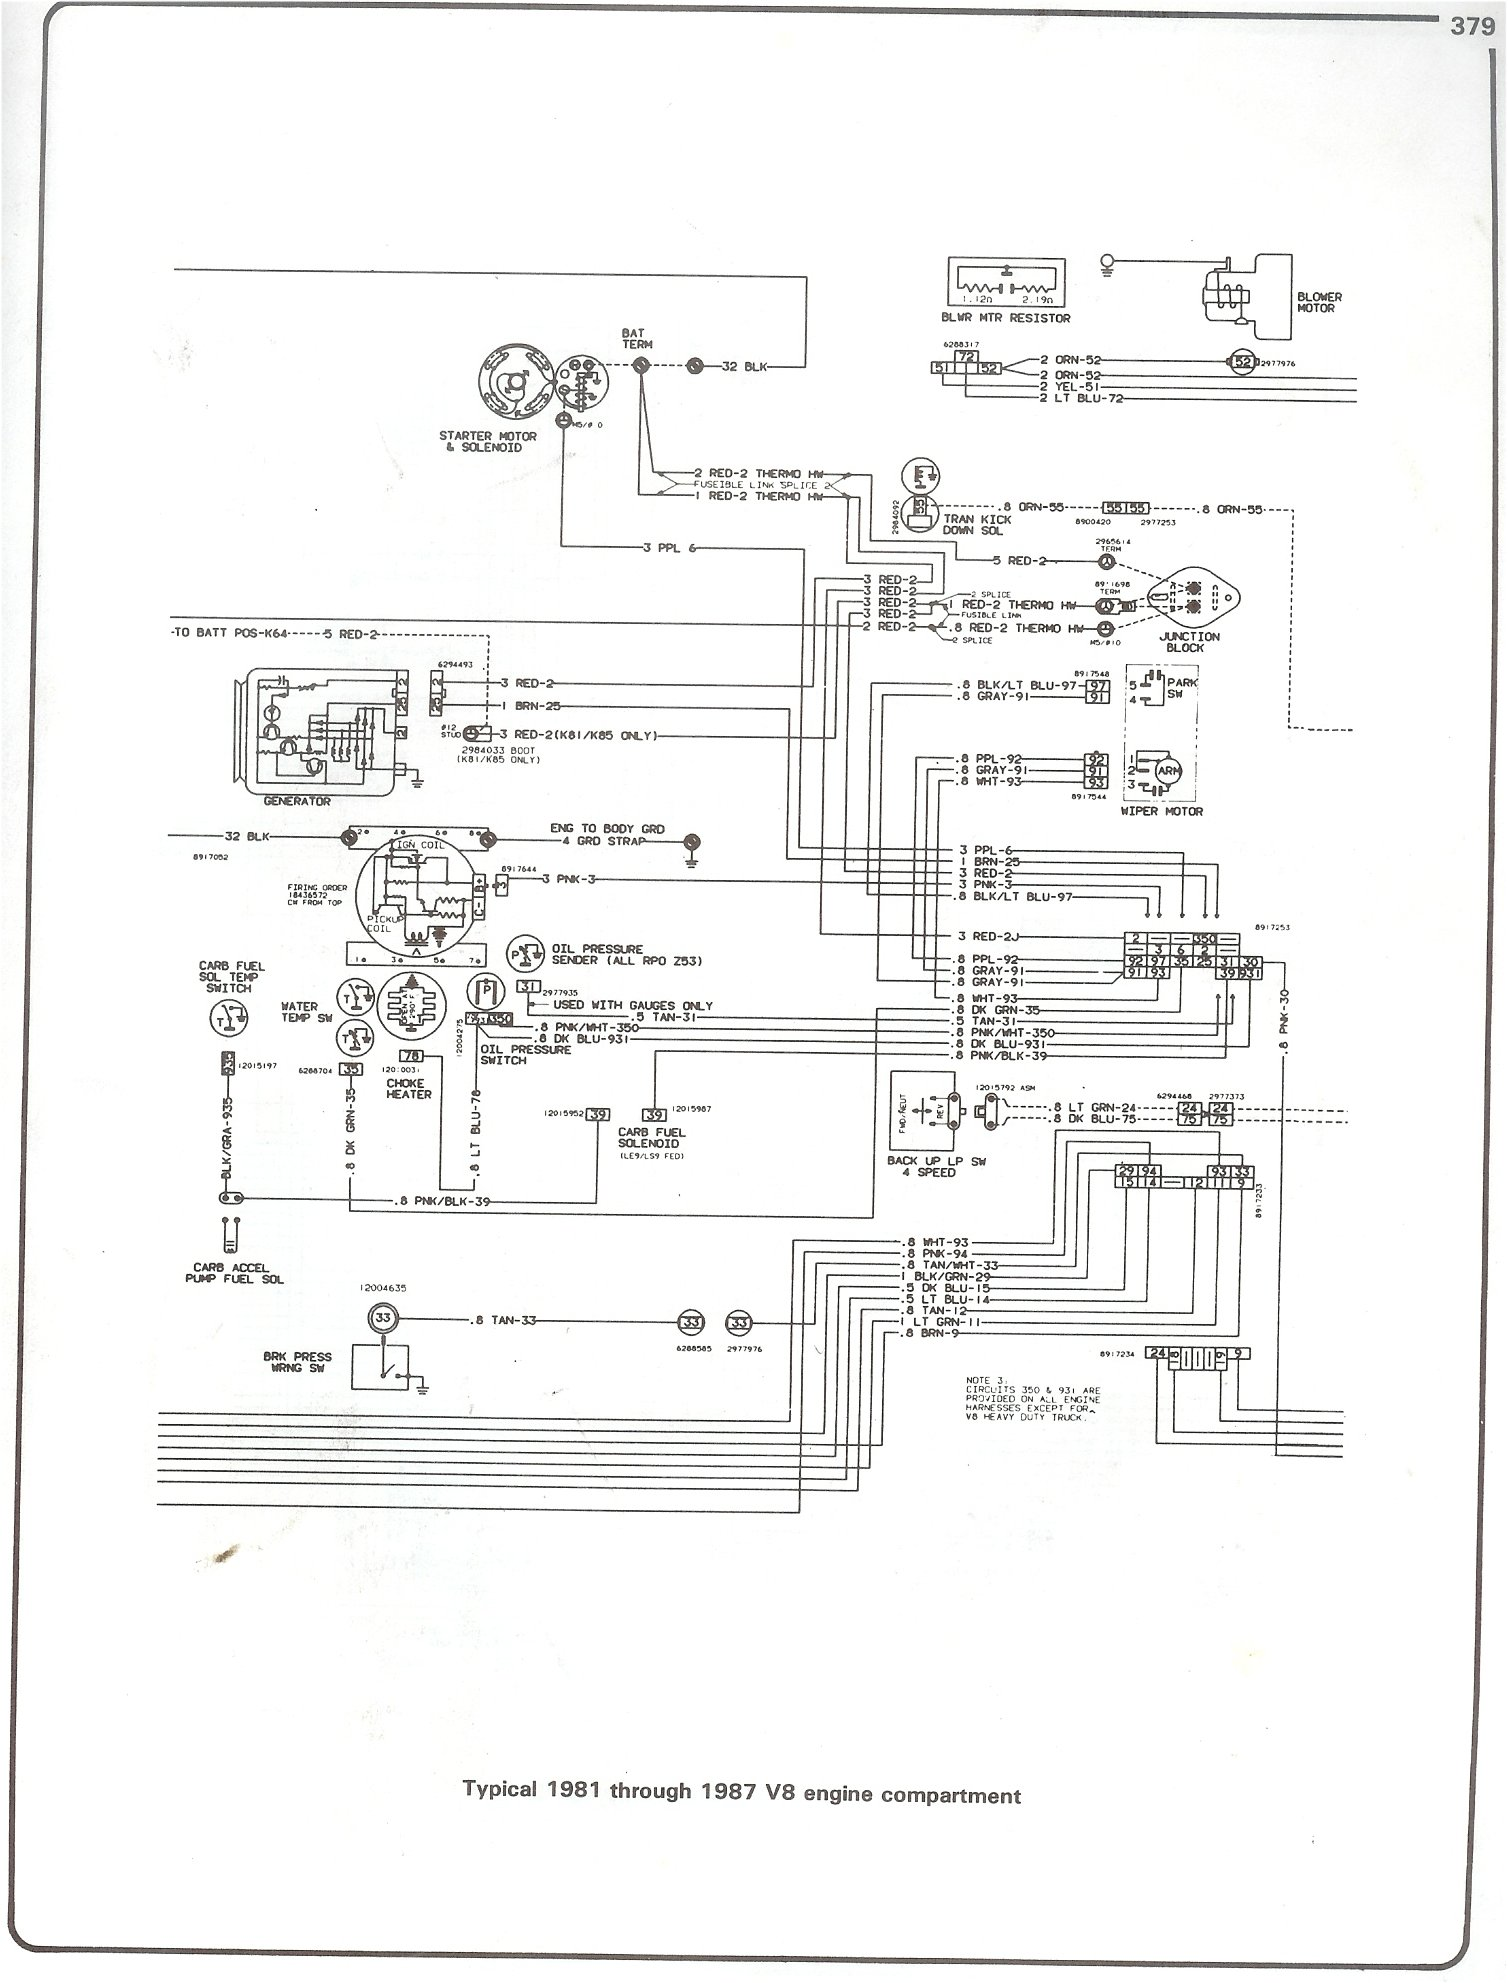 Complete 73 87 Wiring Diagrams 1967 Corvette Dash Schematic 81 V8 Engine Compartment